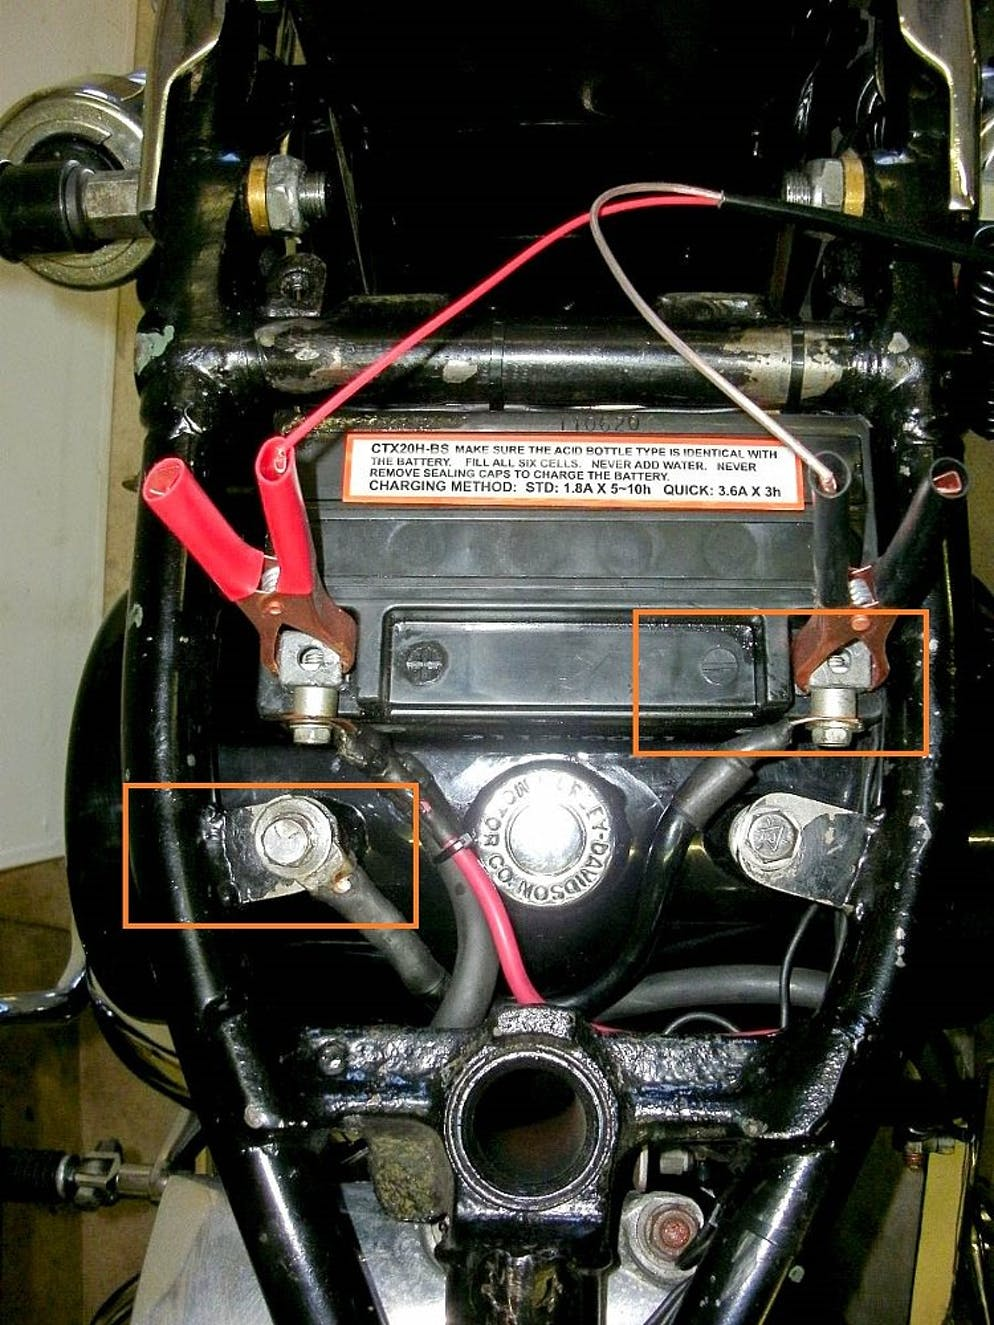 How To Remove And Install A Motorcycle Battery Revzilla Harlery Instruction Cycle Electric Wiring Diagram Look At The Ends Of Negative Cable All This Serves Do Is Connect Side Bikes Frame Allowing Entire